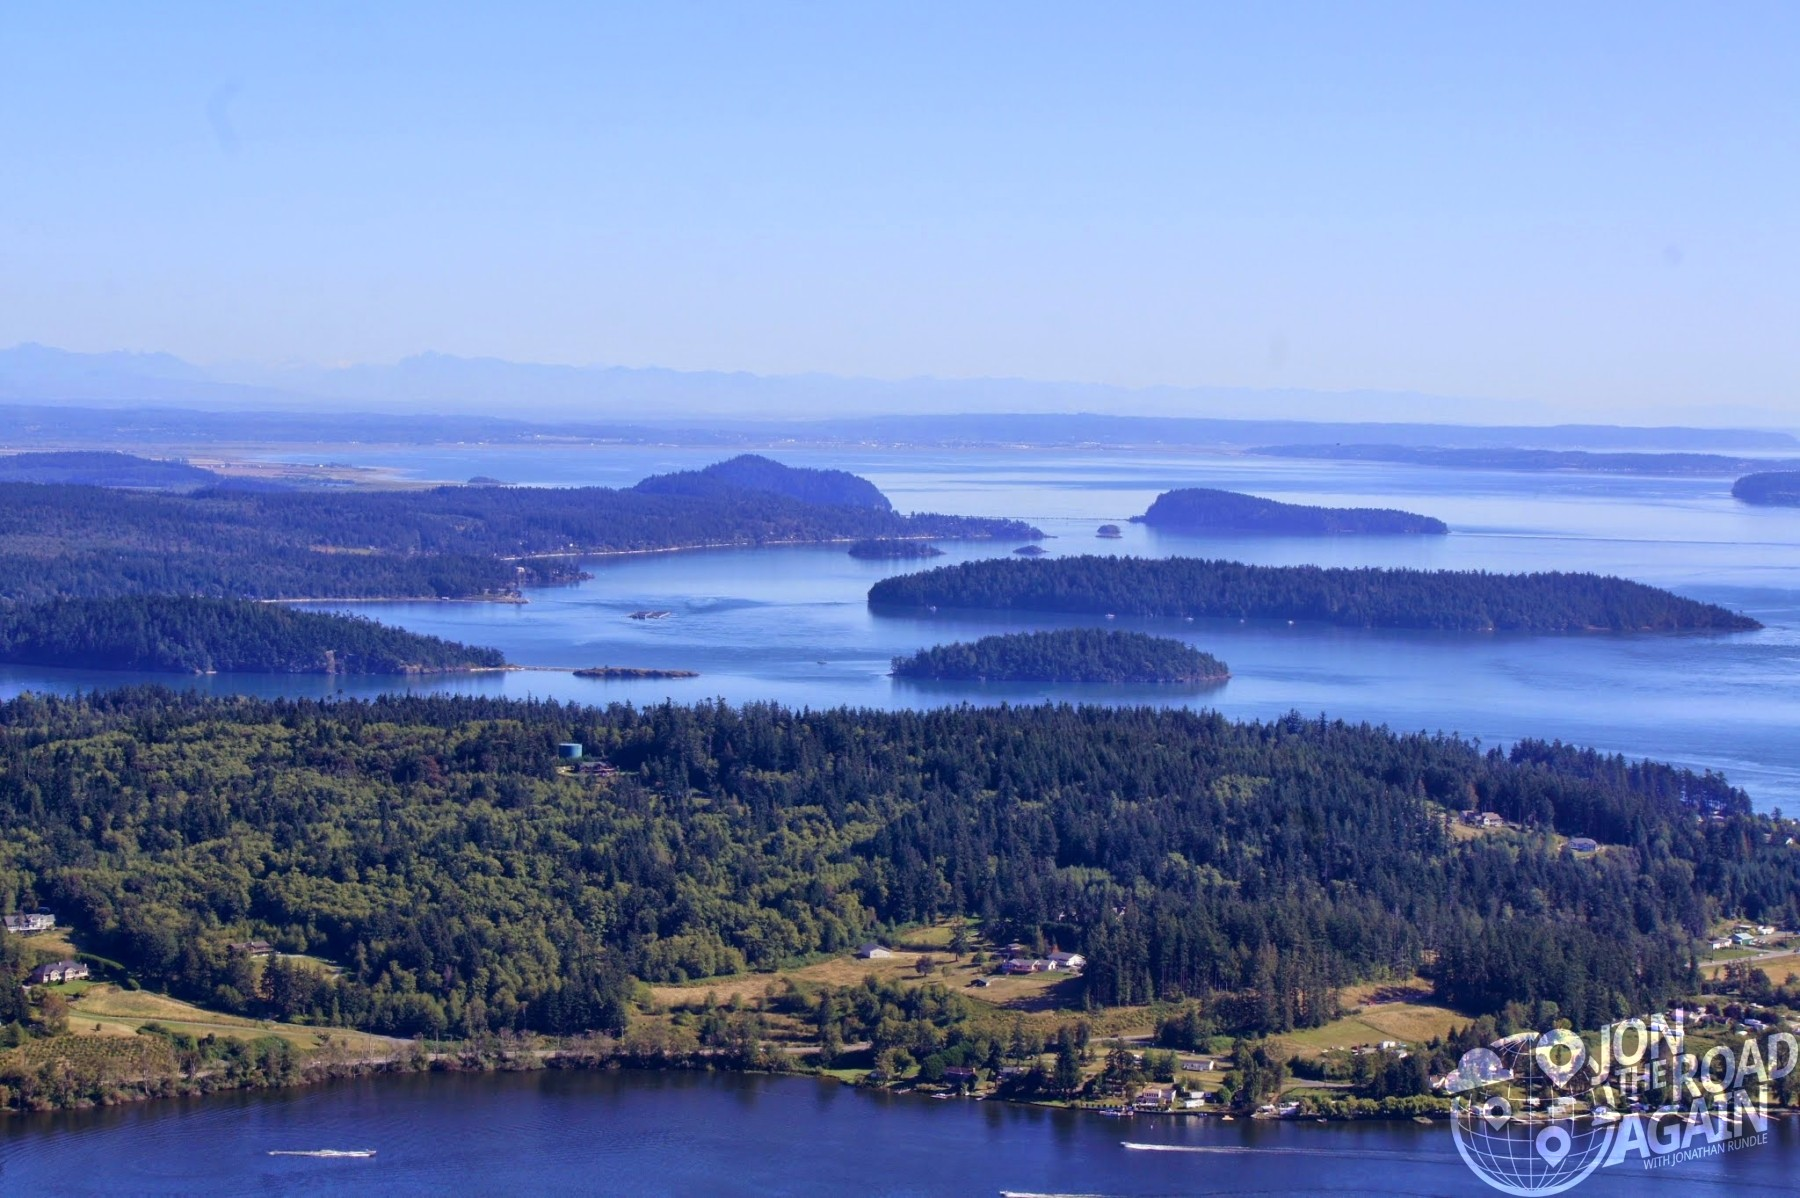 Mt. Erie on Fidalgo Island